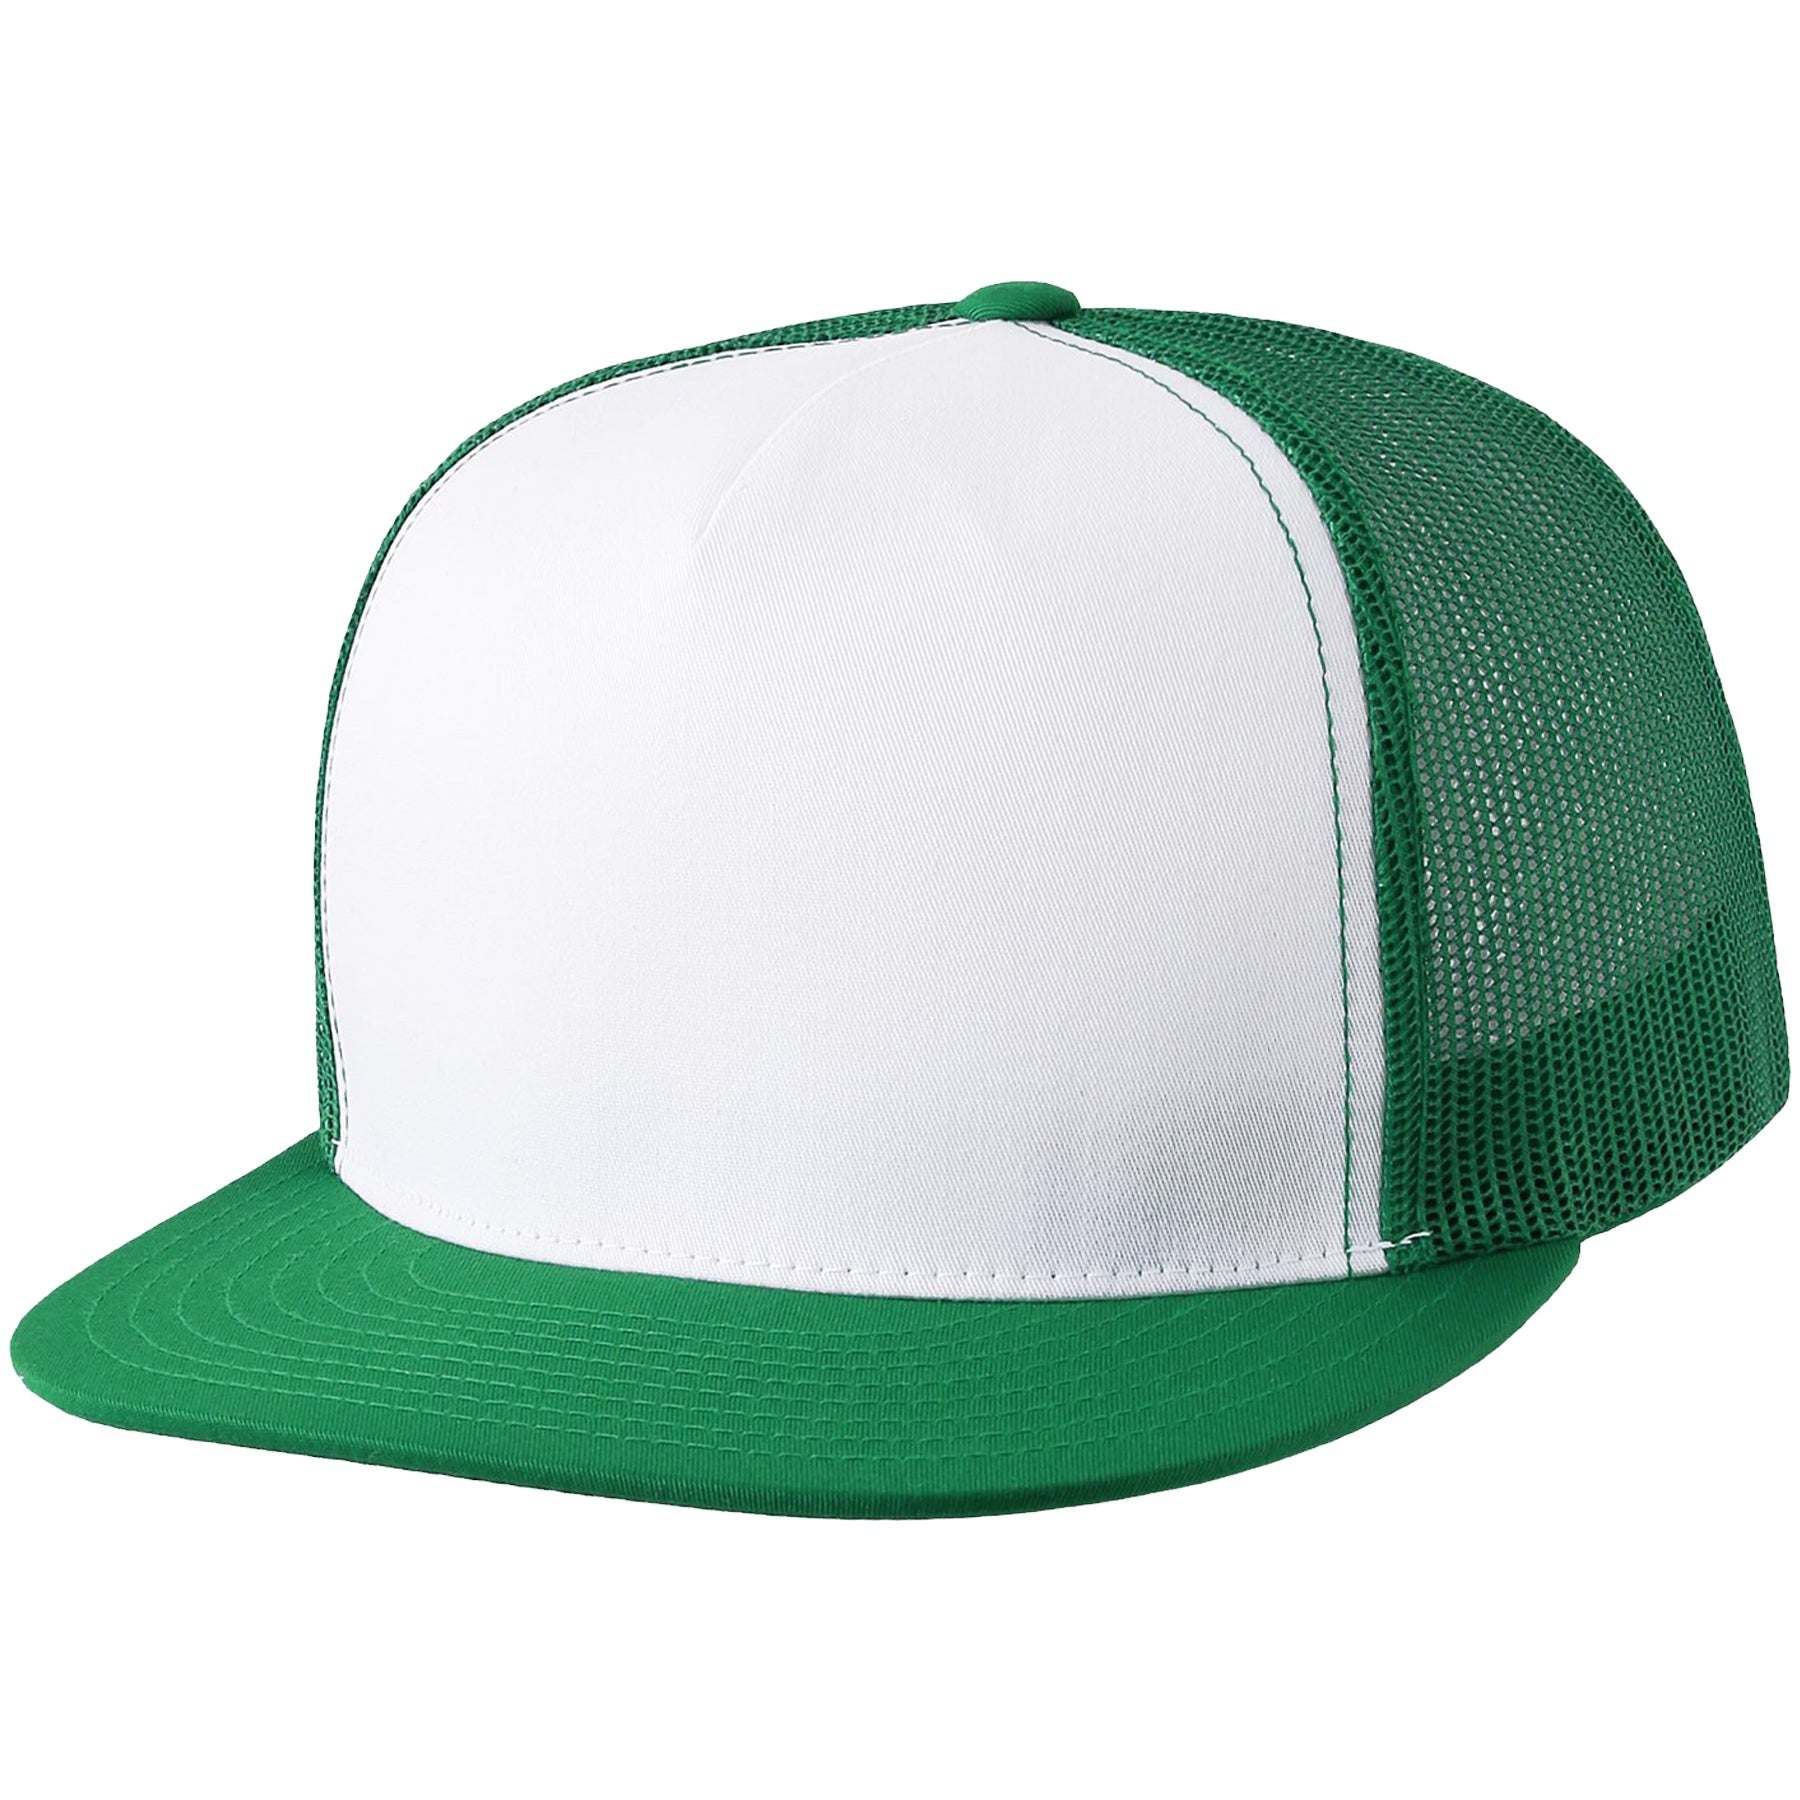 e9a25e9f7a4 the white on green blank trucker hat has a white crown